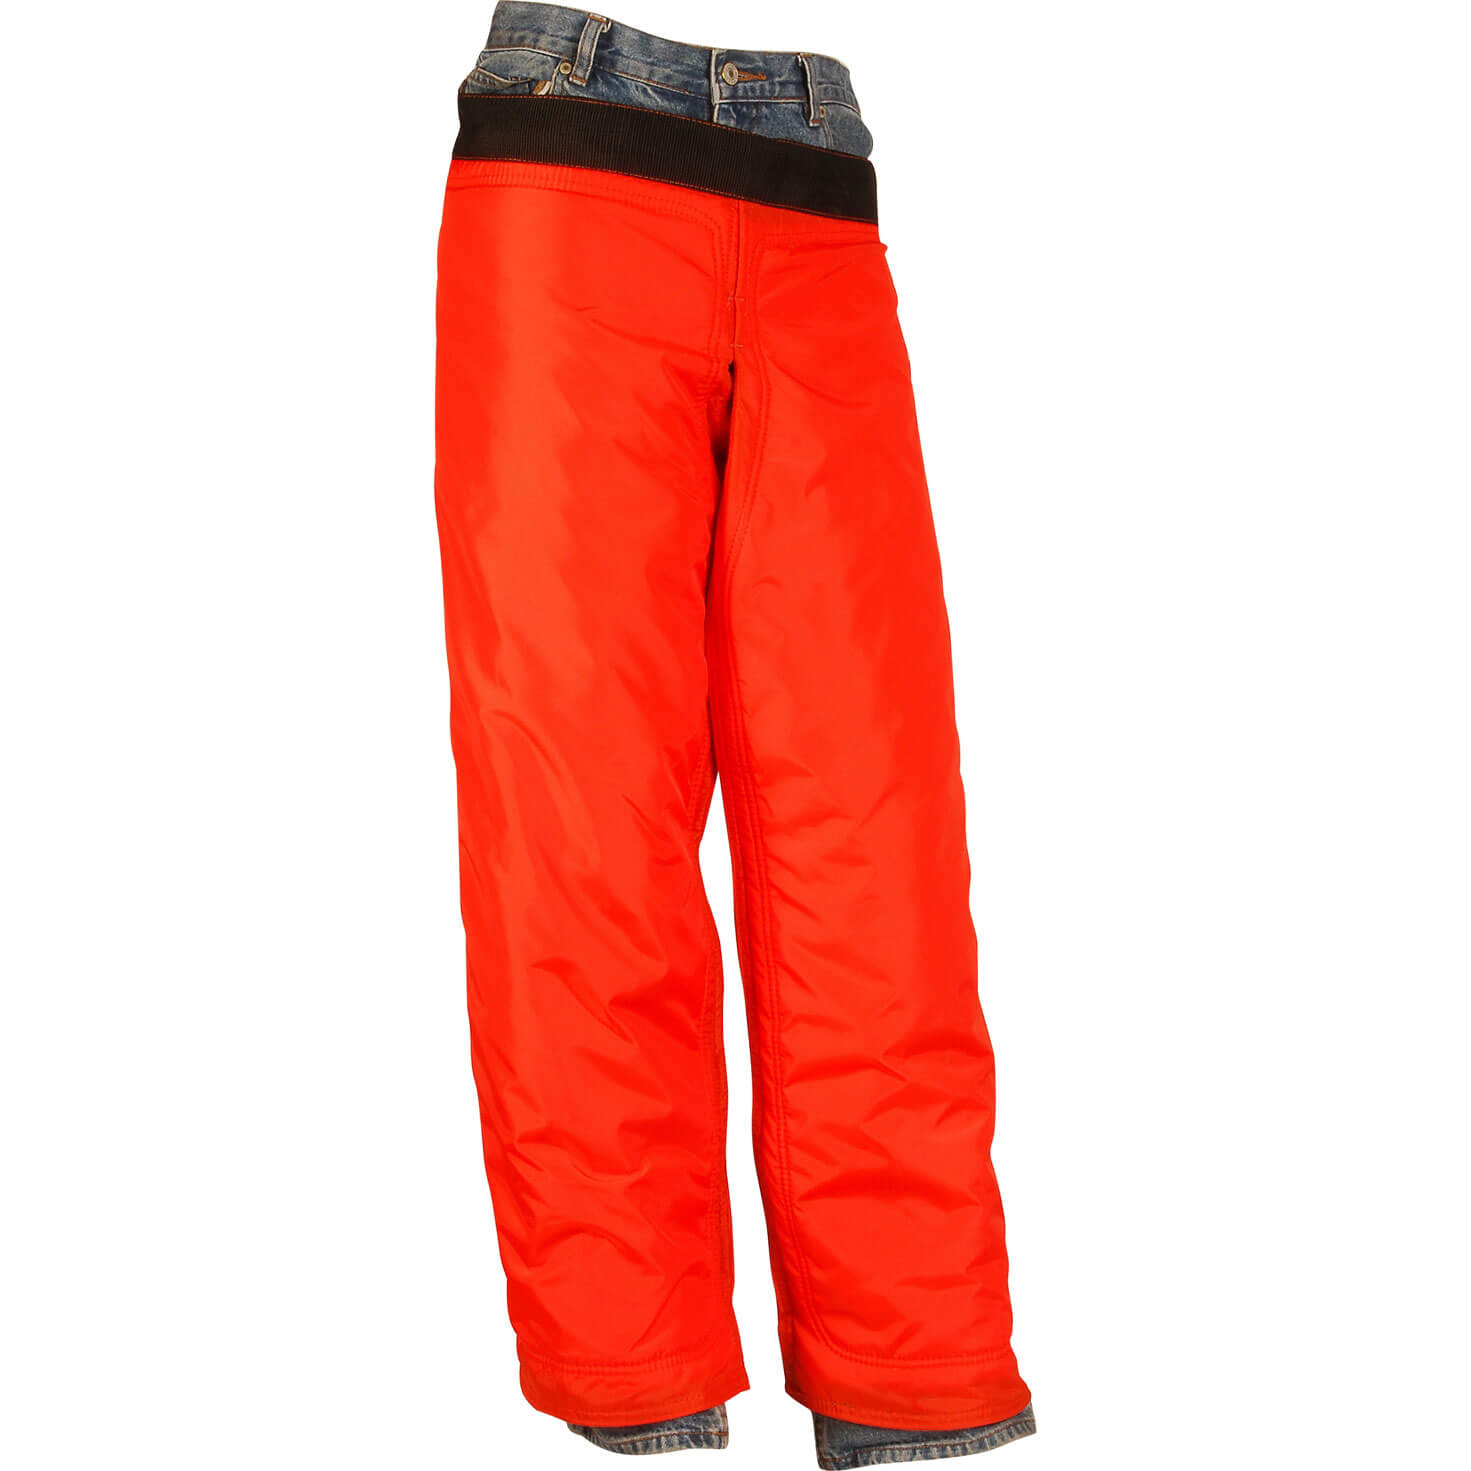 Image of ALM Chainsaw Safety Leggings